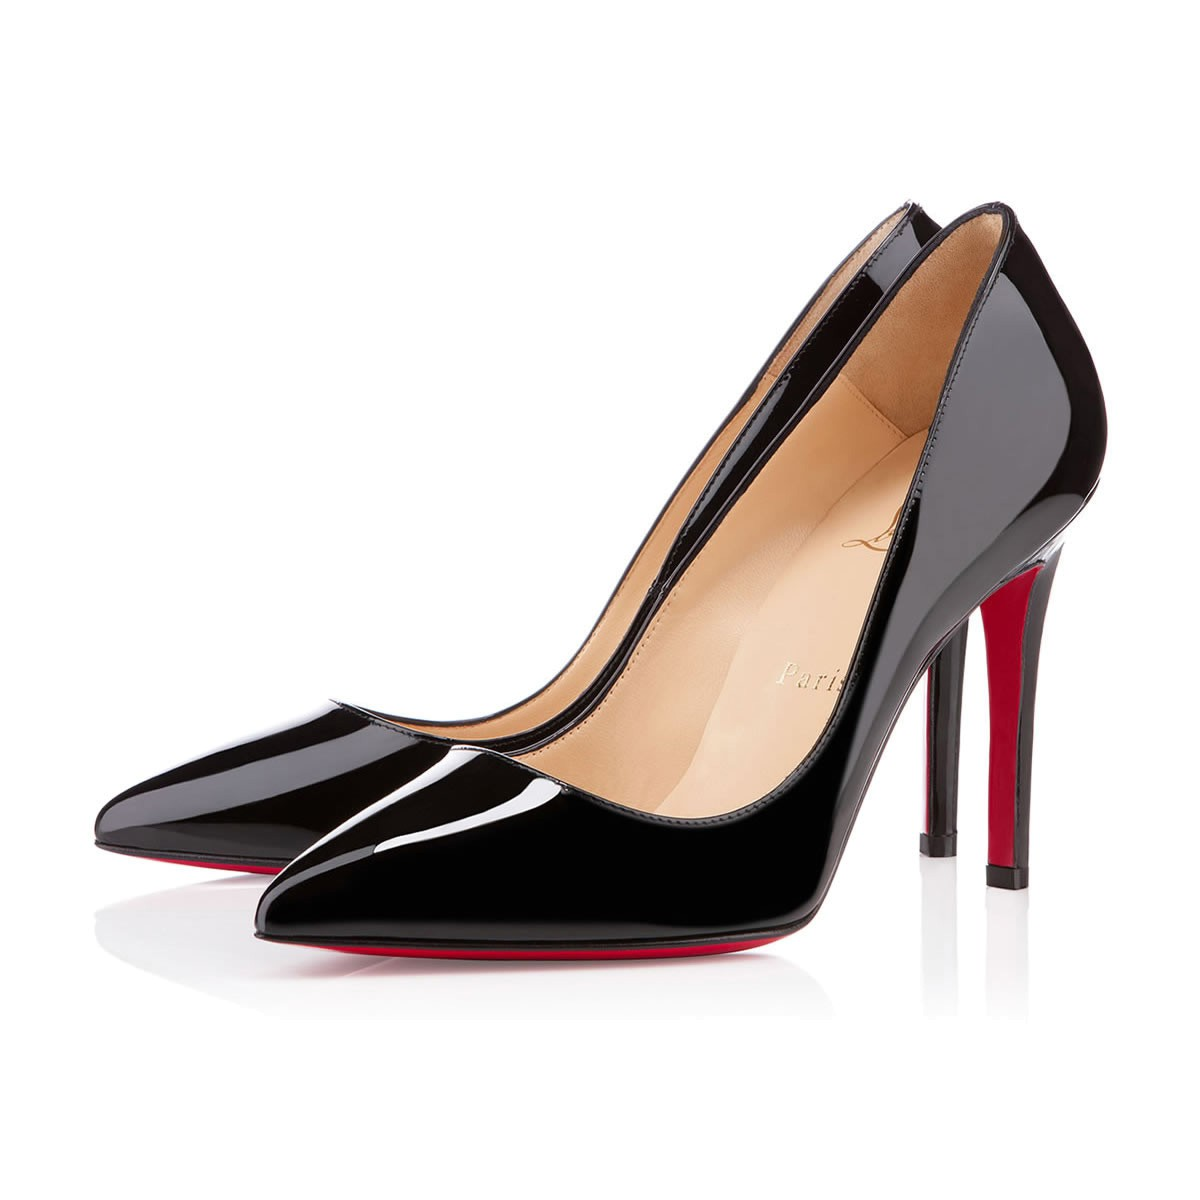 1) Black High Heeled Court Shoes   Christian Louboutin Pigalle Patent 100, £455